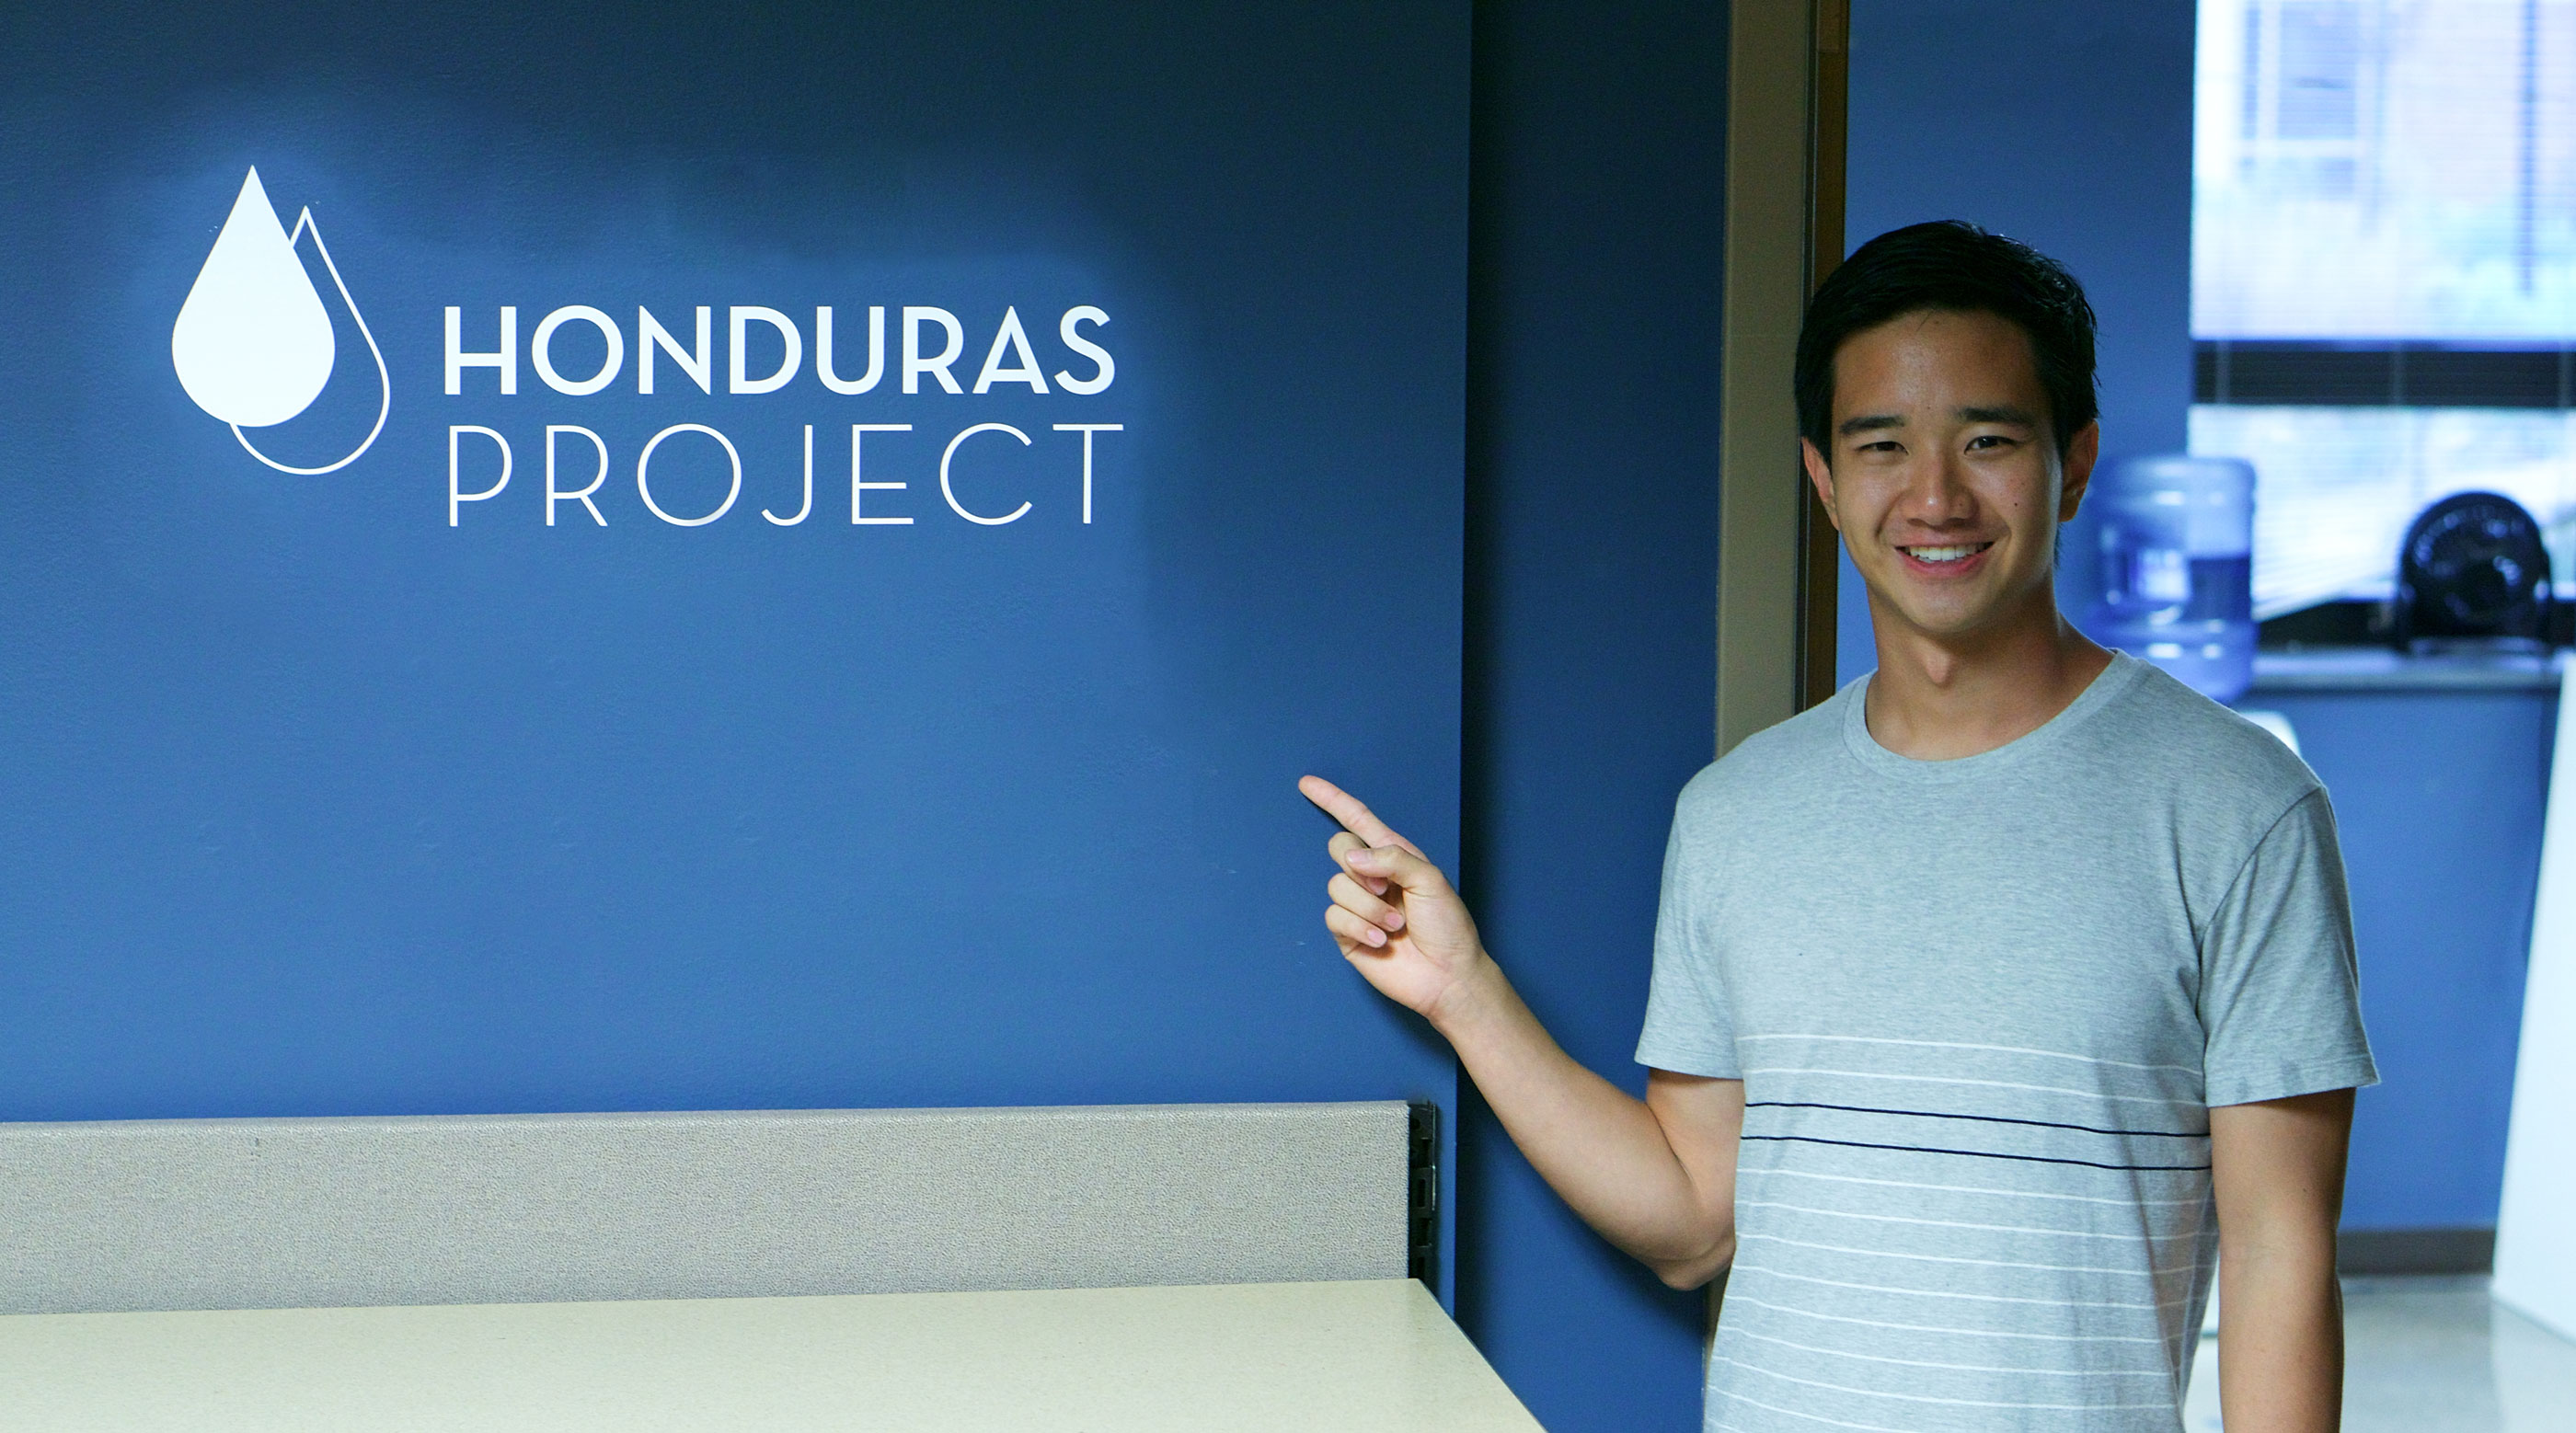 Wheaton Student pointing at Honduras Project Logo